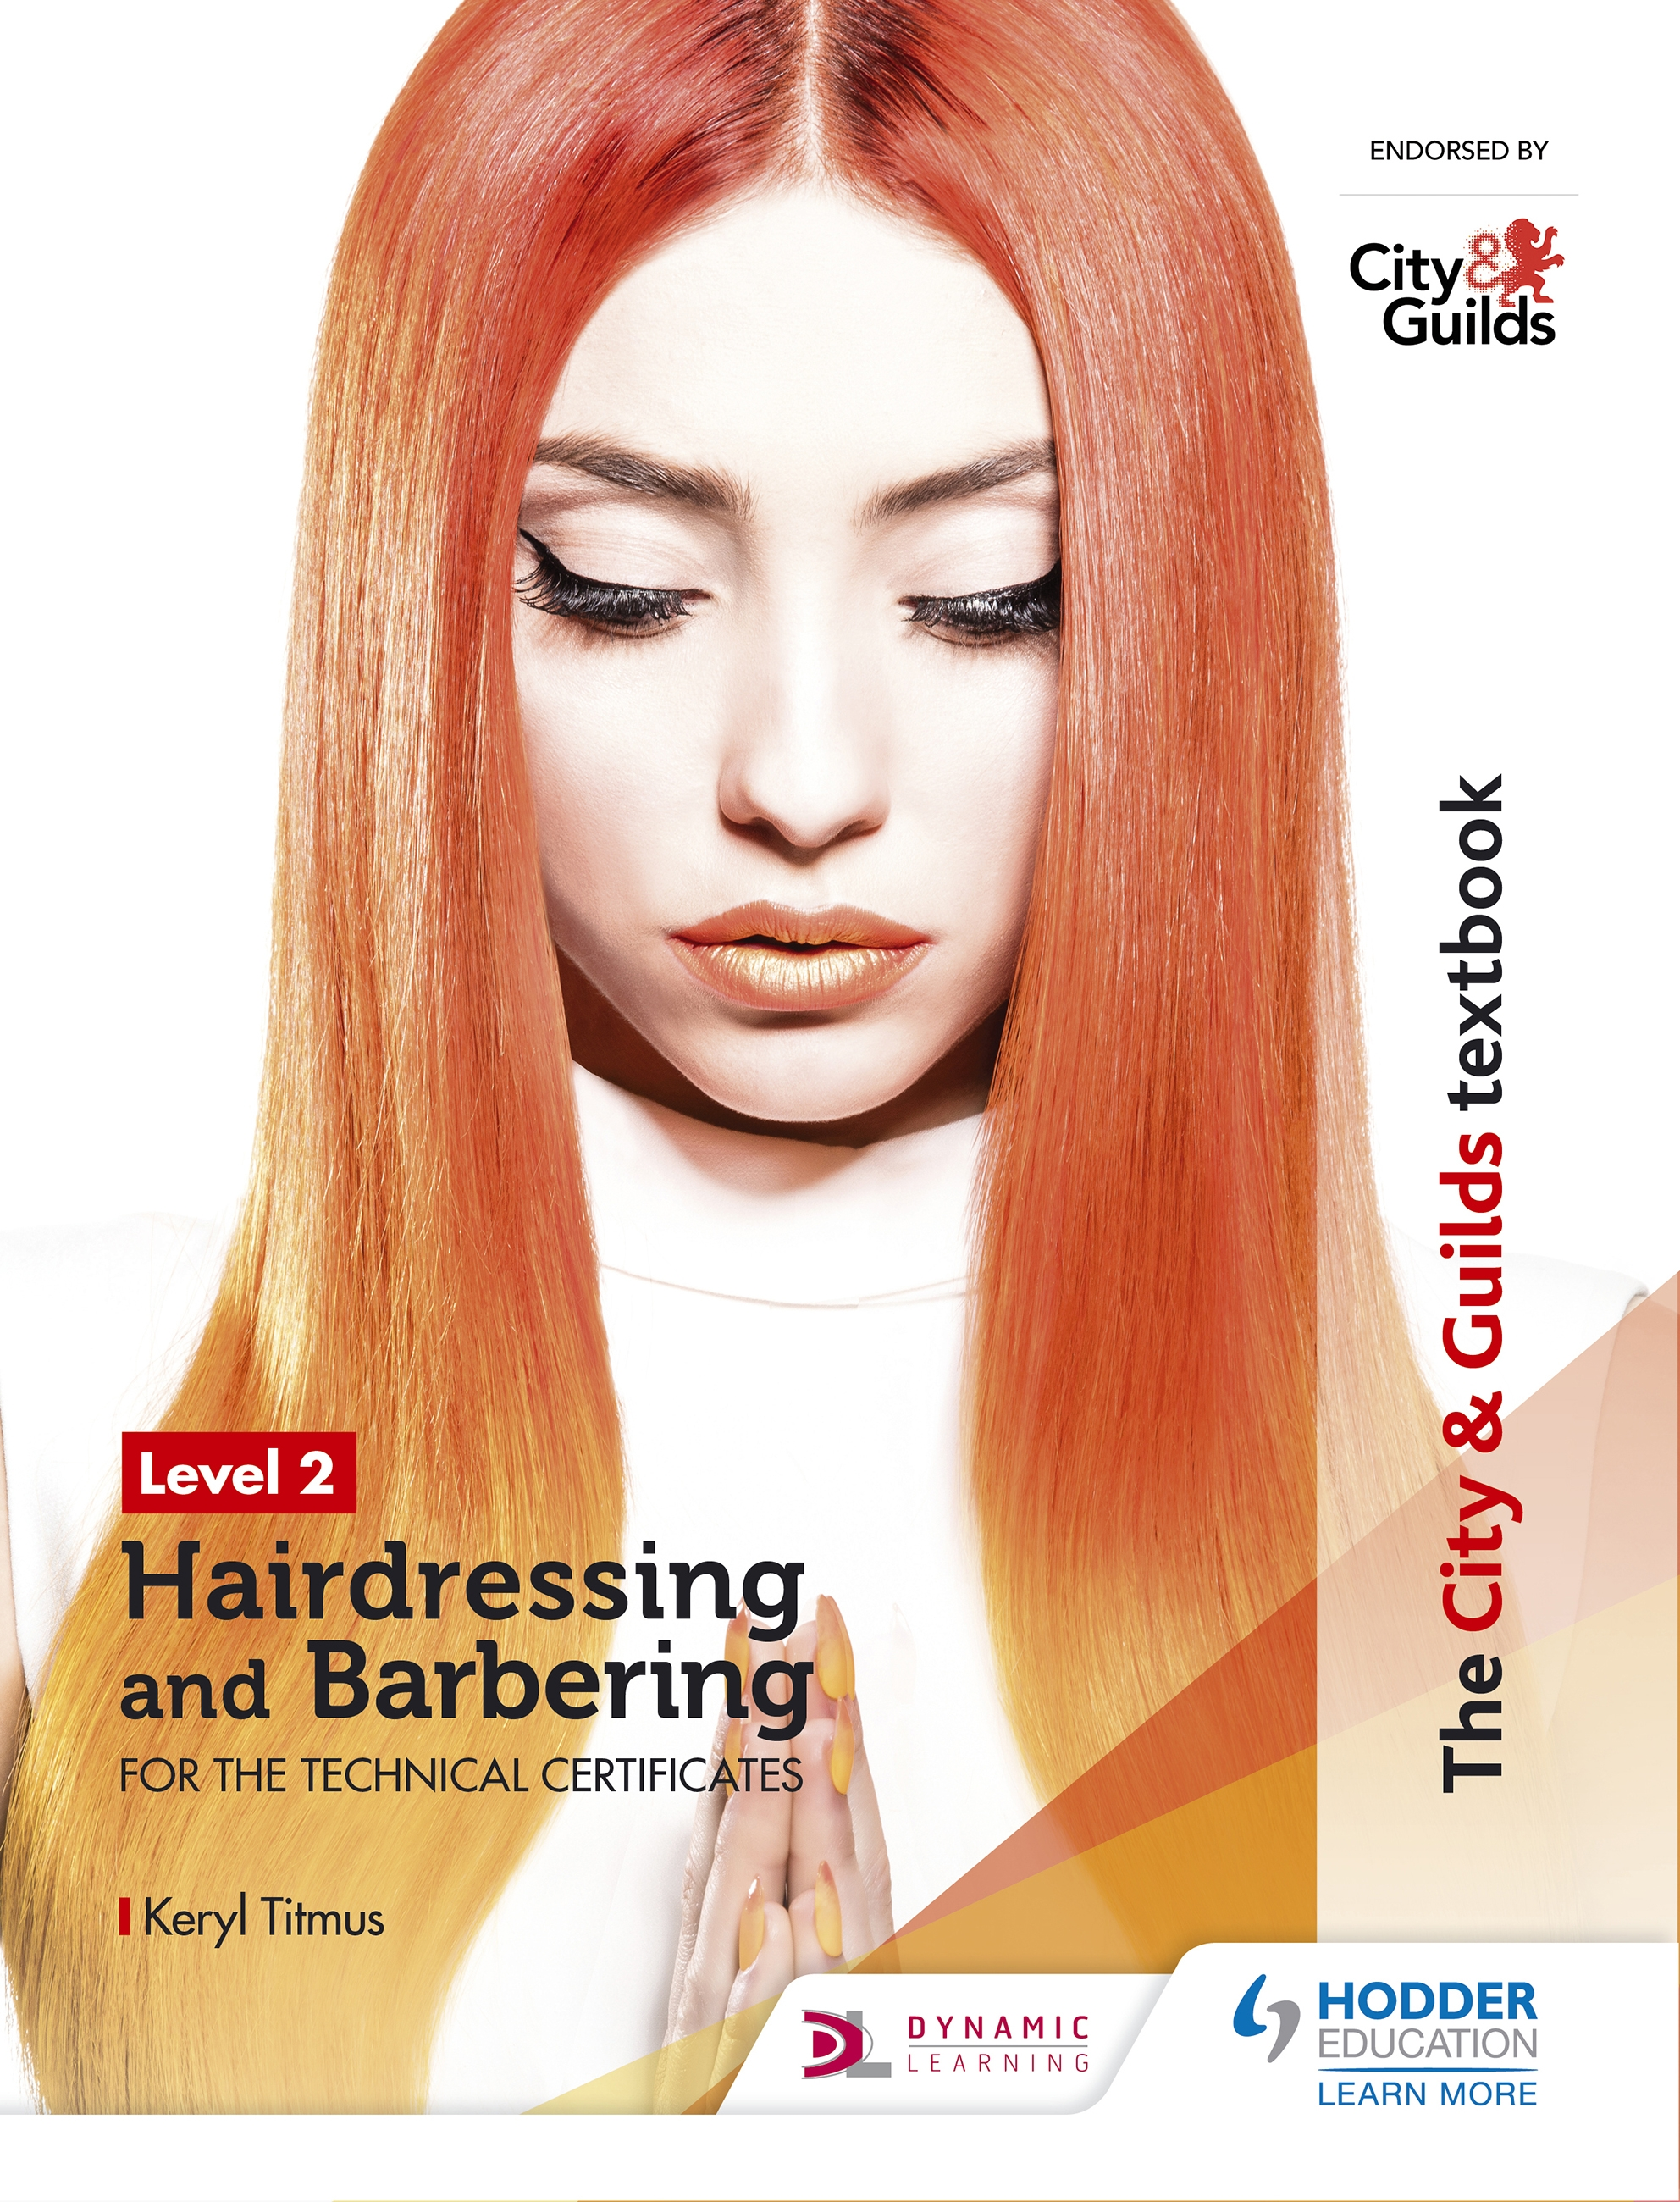 Hairdressing textbooks the city guilds textbook level 2 hairdressing and barbering for the technical certificates fandeluxe Images